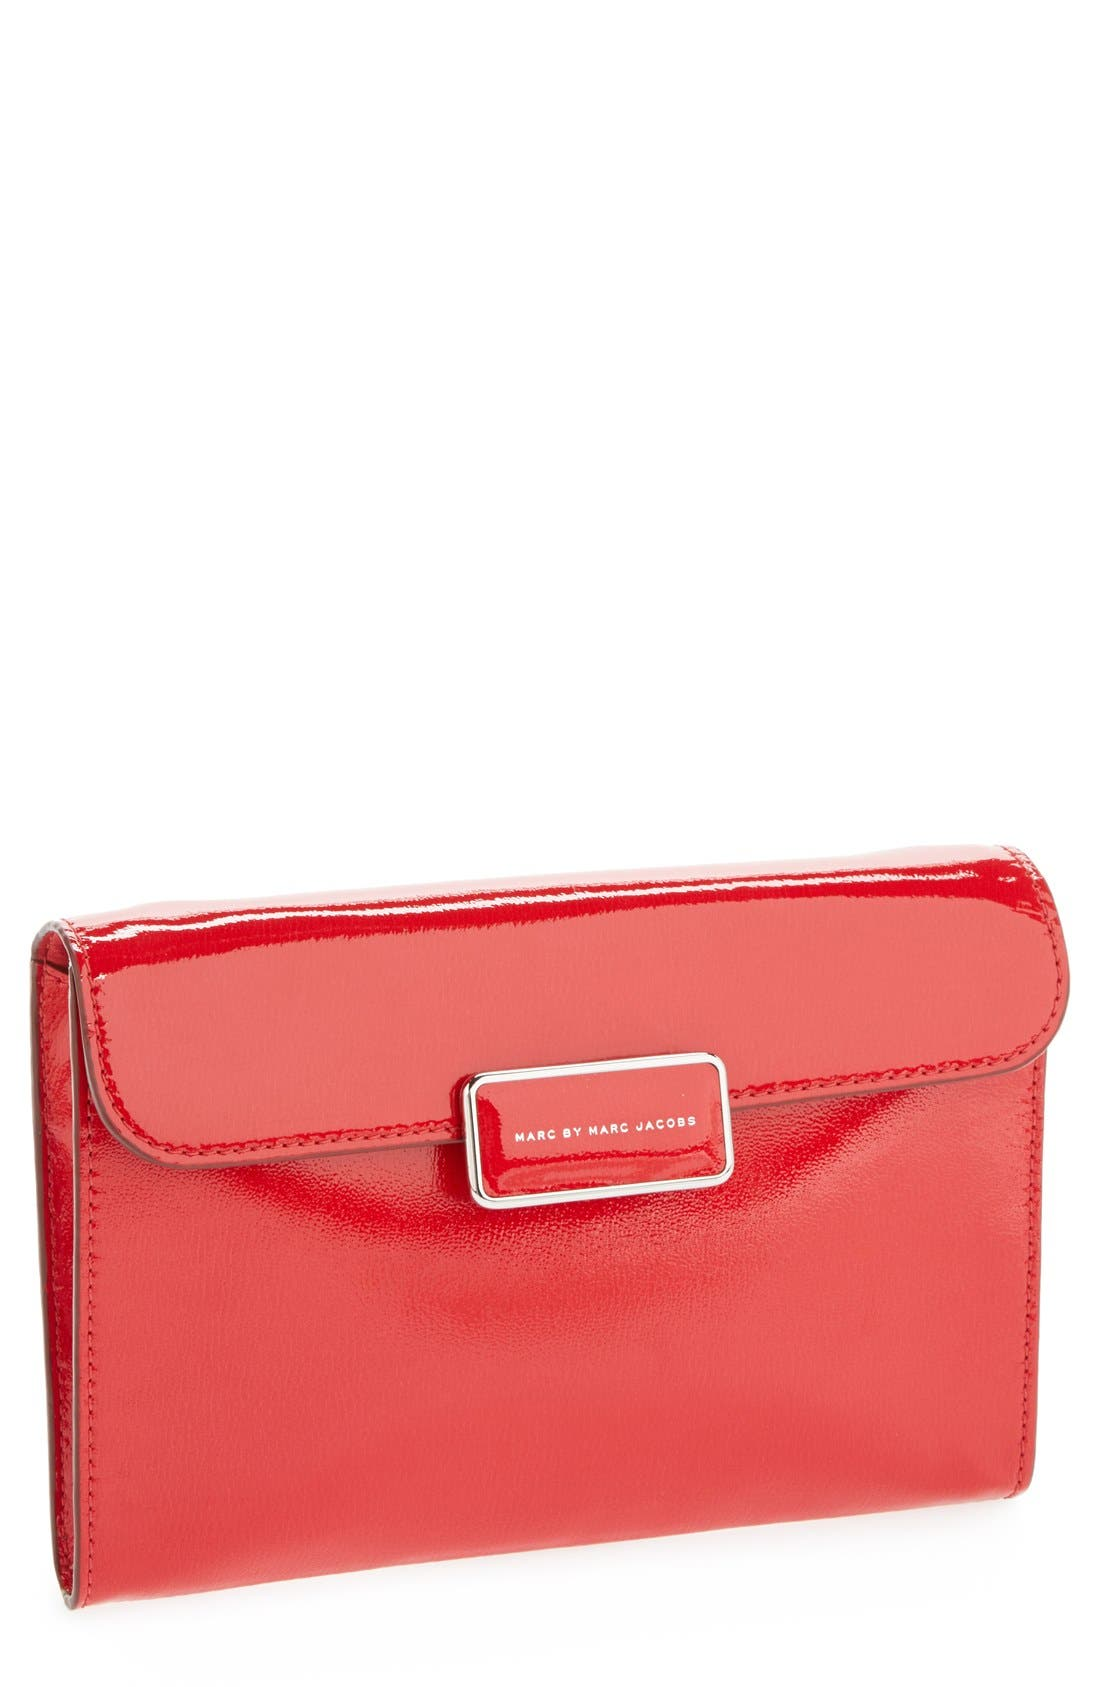 MARC BY MARC JACOBS 'Pegg' Patent Leather Clutch, Main, color, 600